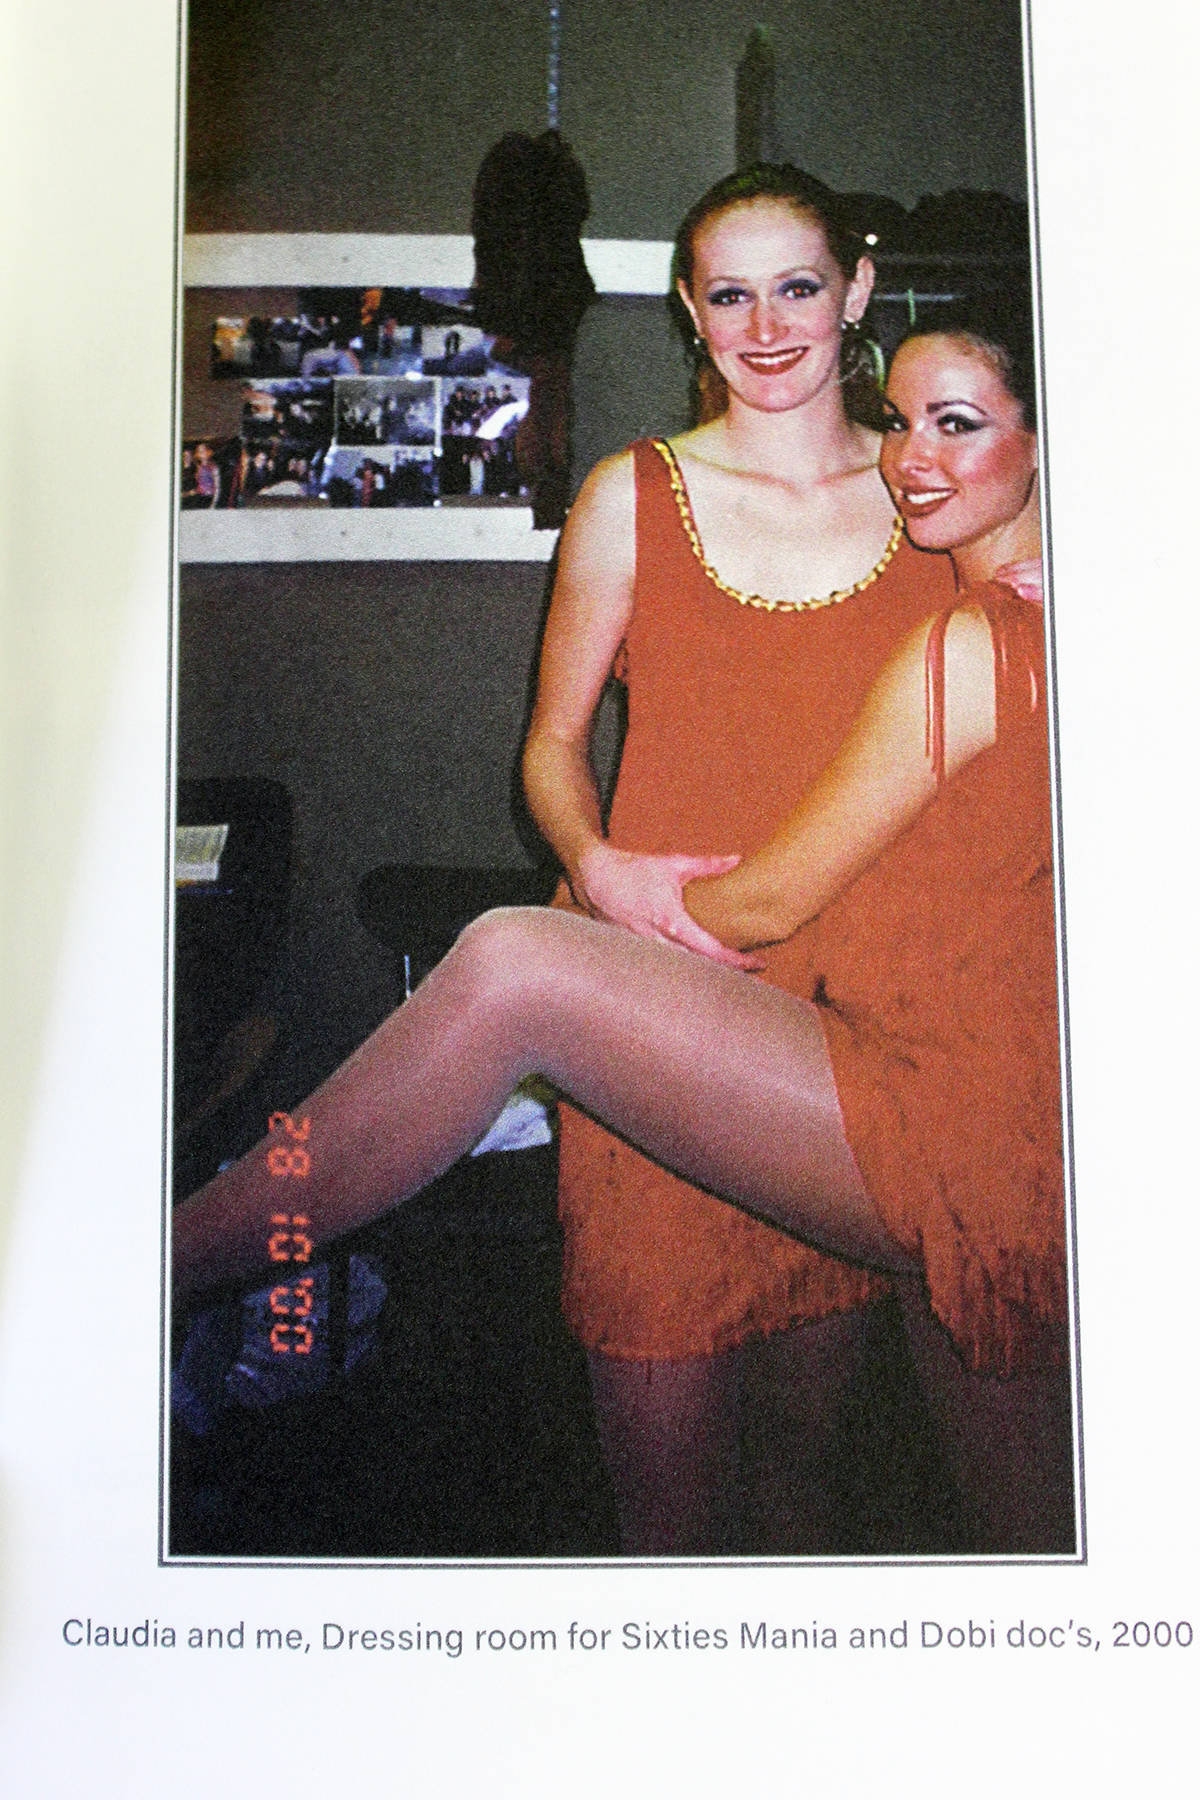 Heather Williams was a prolific dancer with Sixties Mania and other shows in 2000. (Photo by Don Bodger from Little Feet)